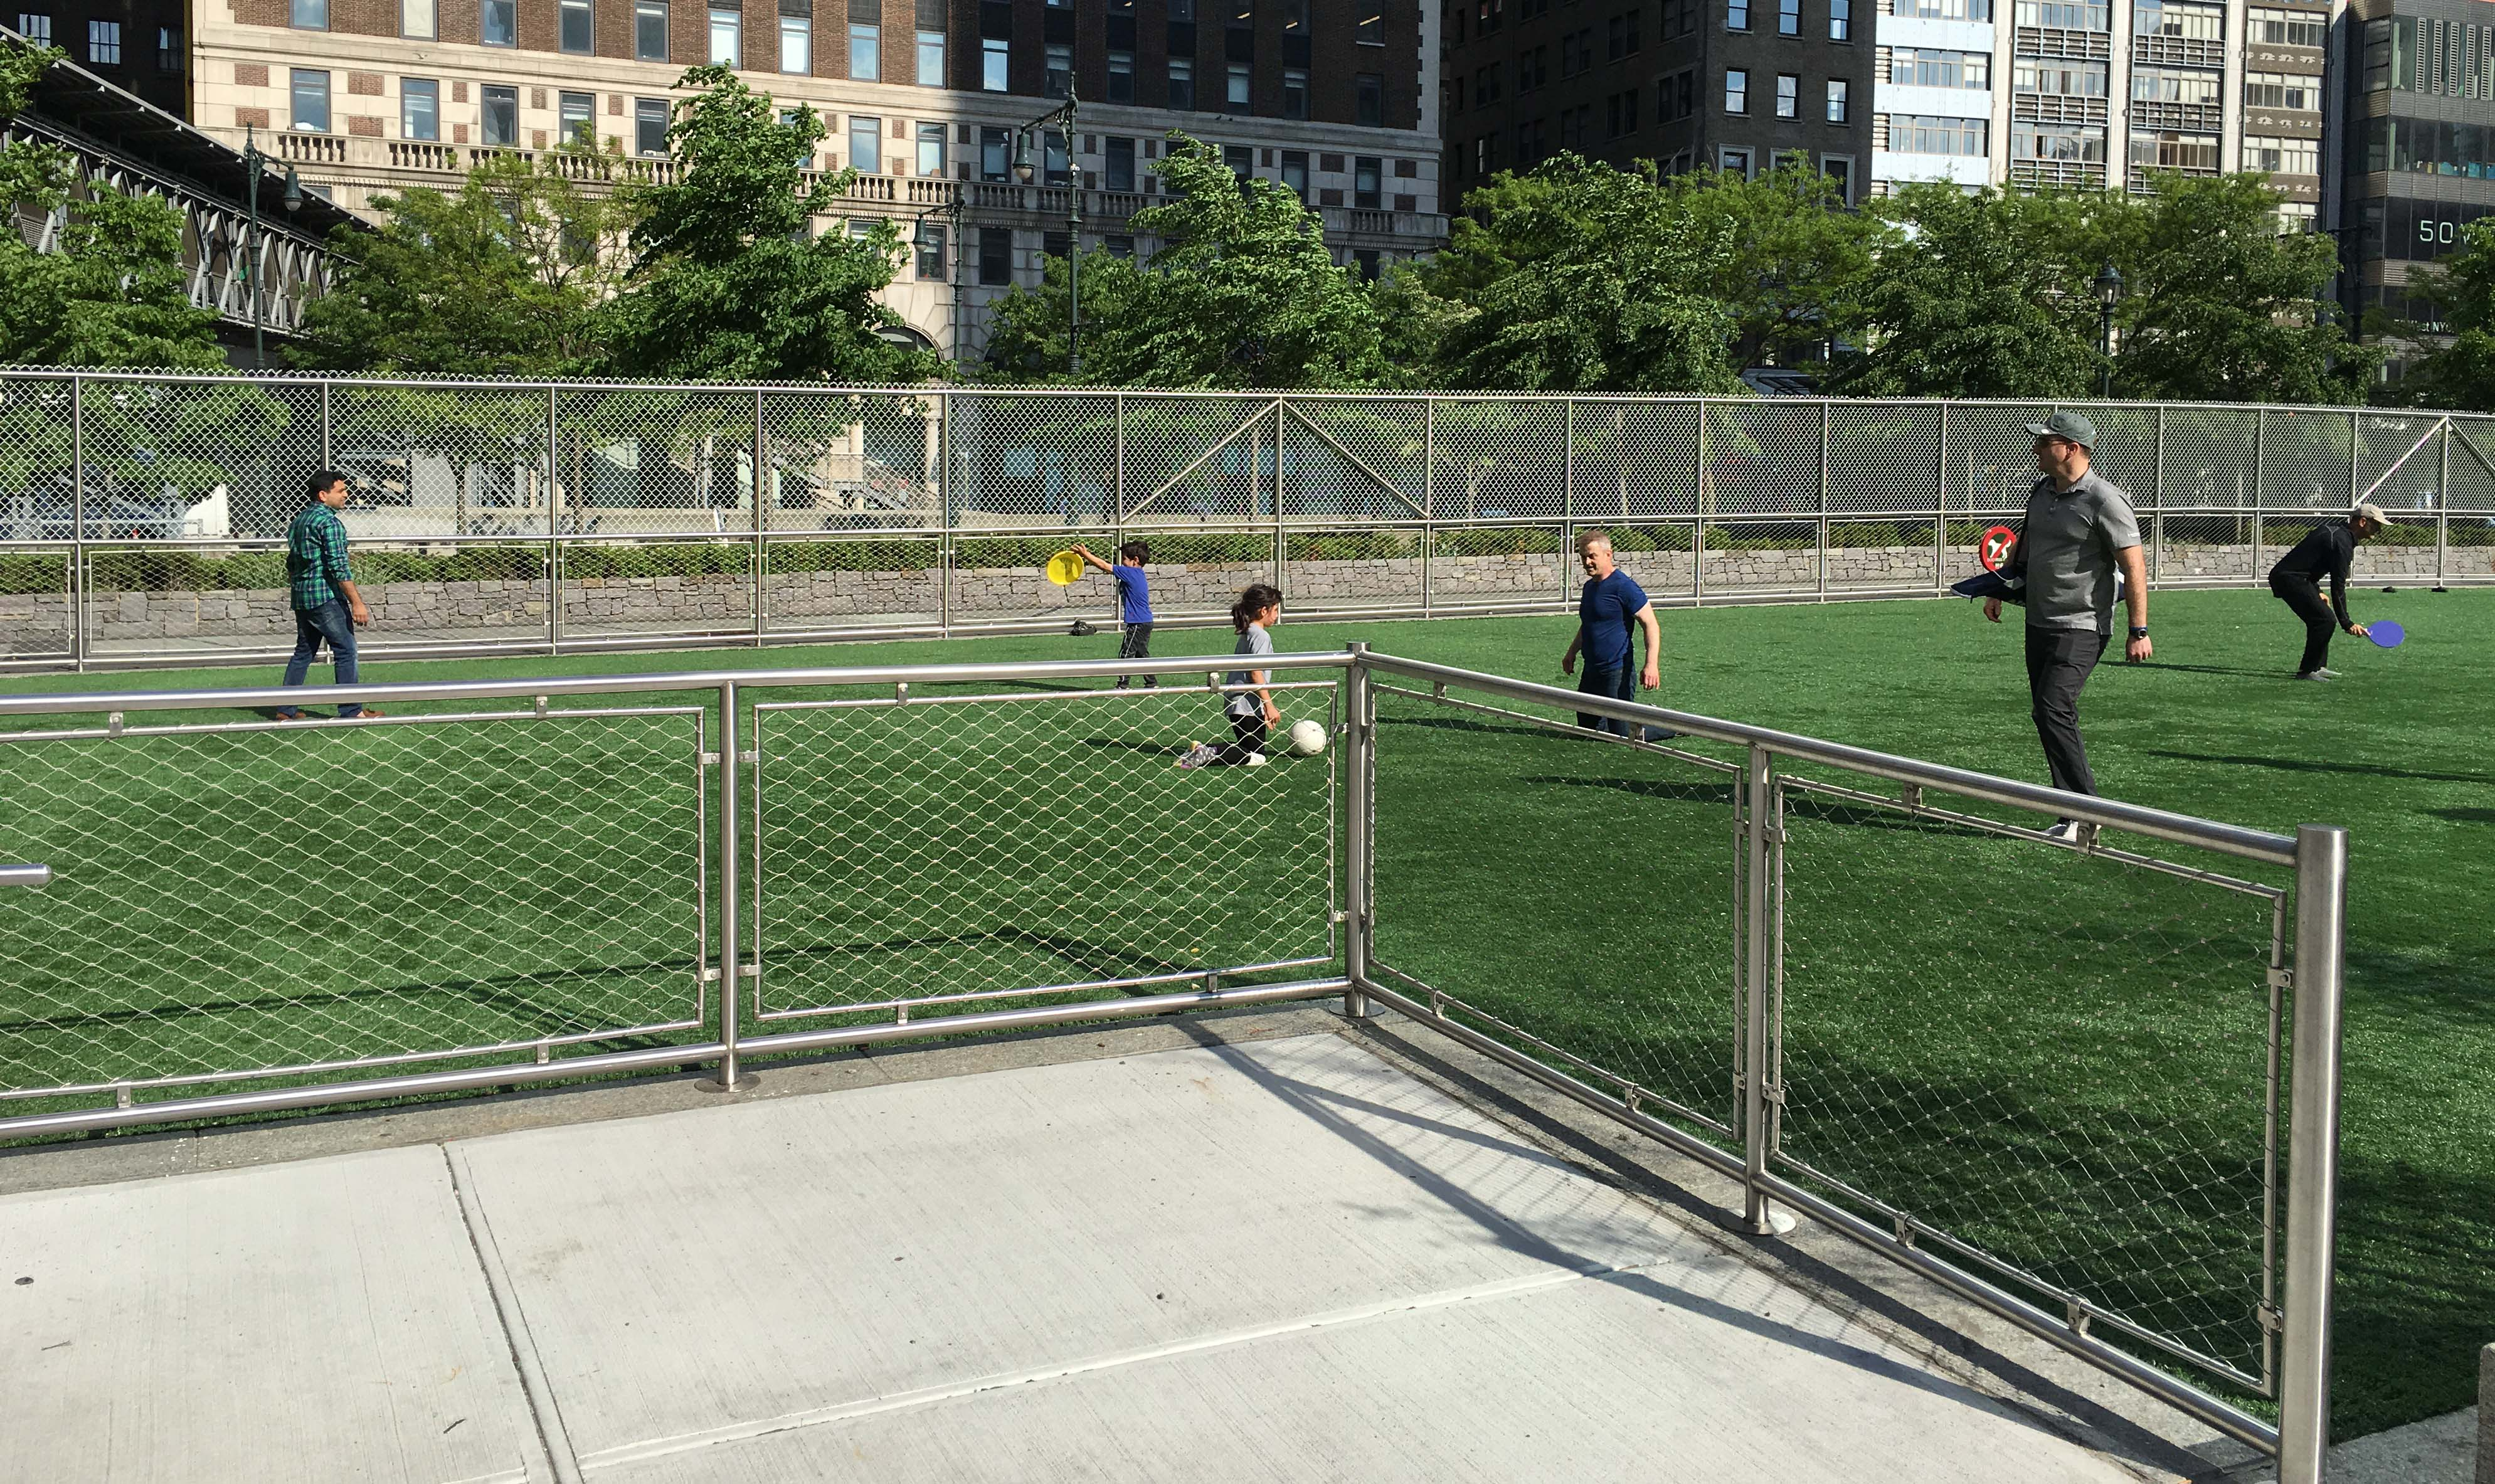 Higher new fence on West Thames turf field